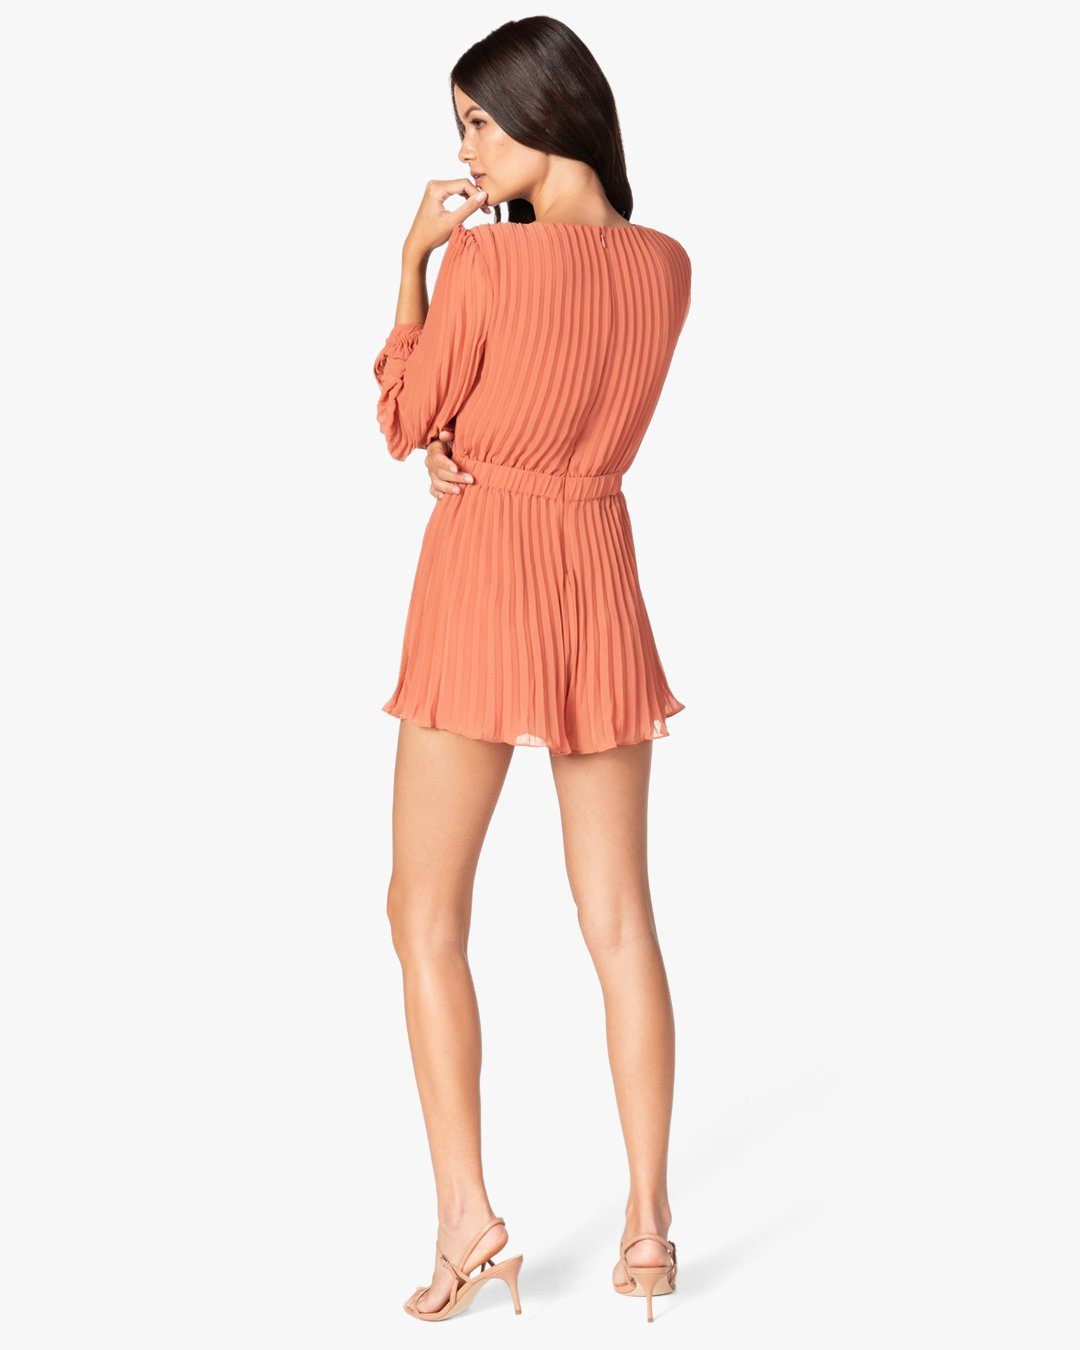 TOWER BAR SUNSETS ROMPER